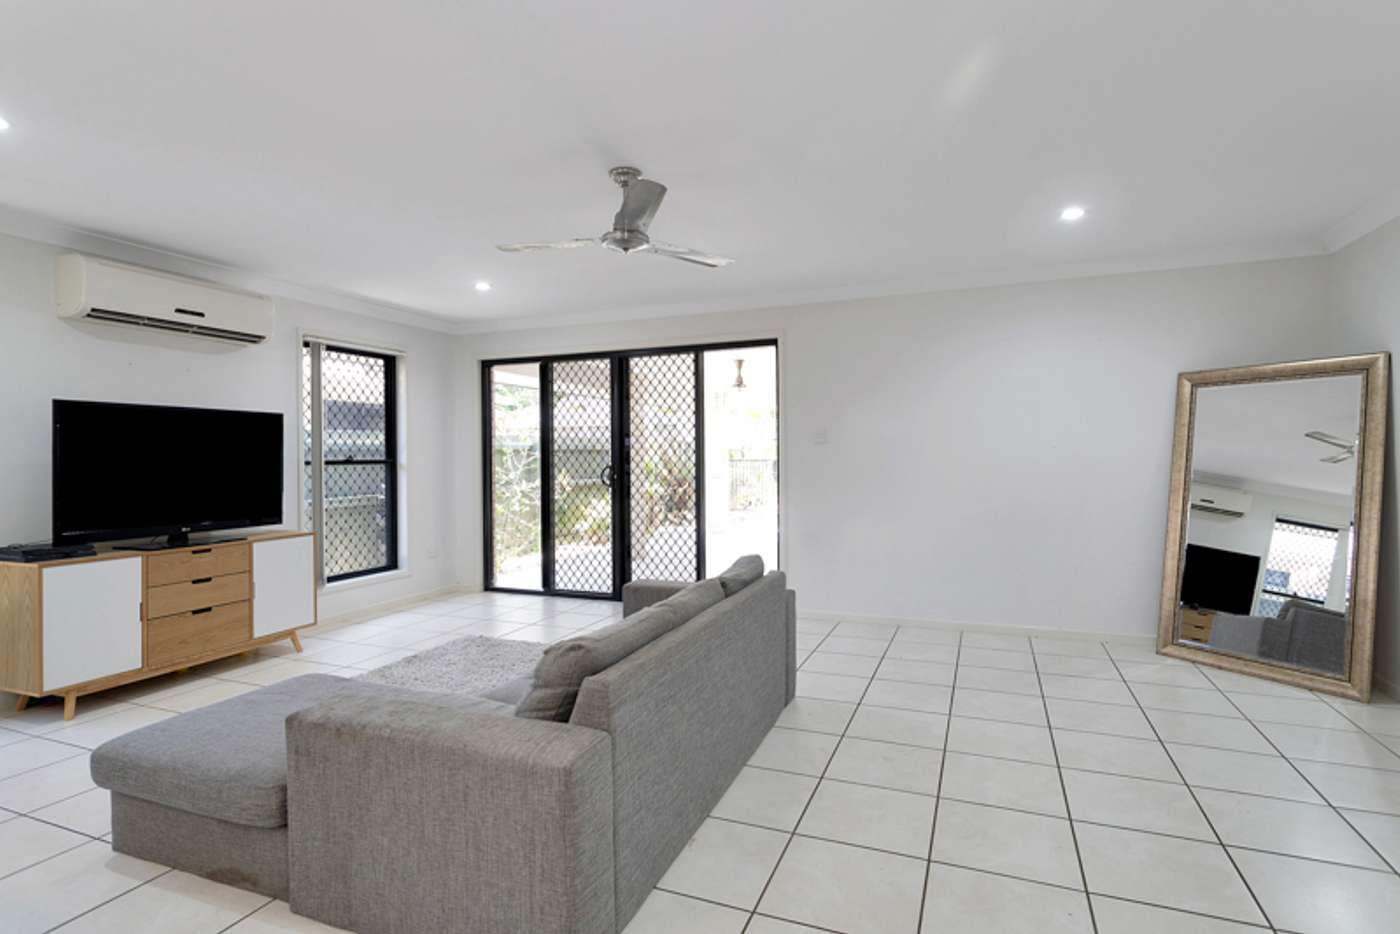 Seventh view of Homely house listing, 30 Schooner Avenue, Bucasia QLD 4750